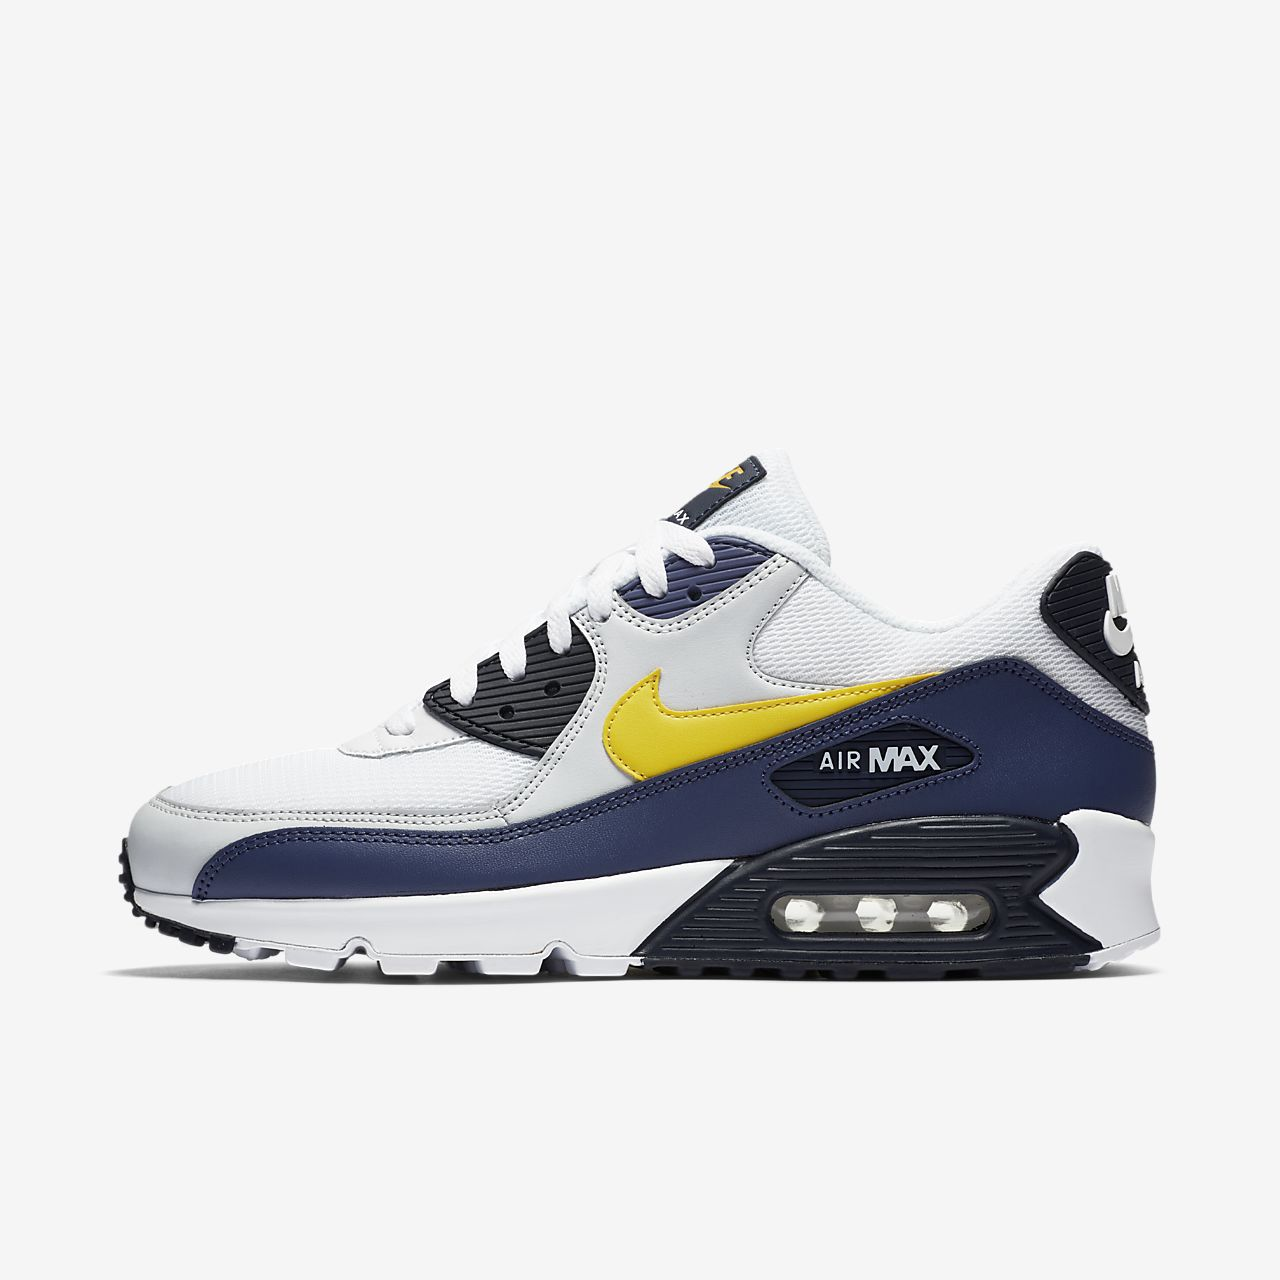 Marques Chaussure homme Nike homme Nike Air Max 90 Essential White/Tour Yellow-Blue Recall